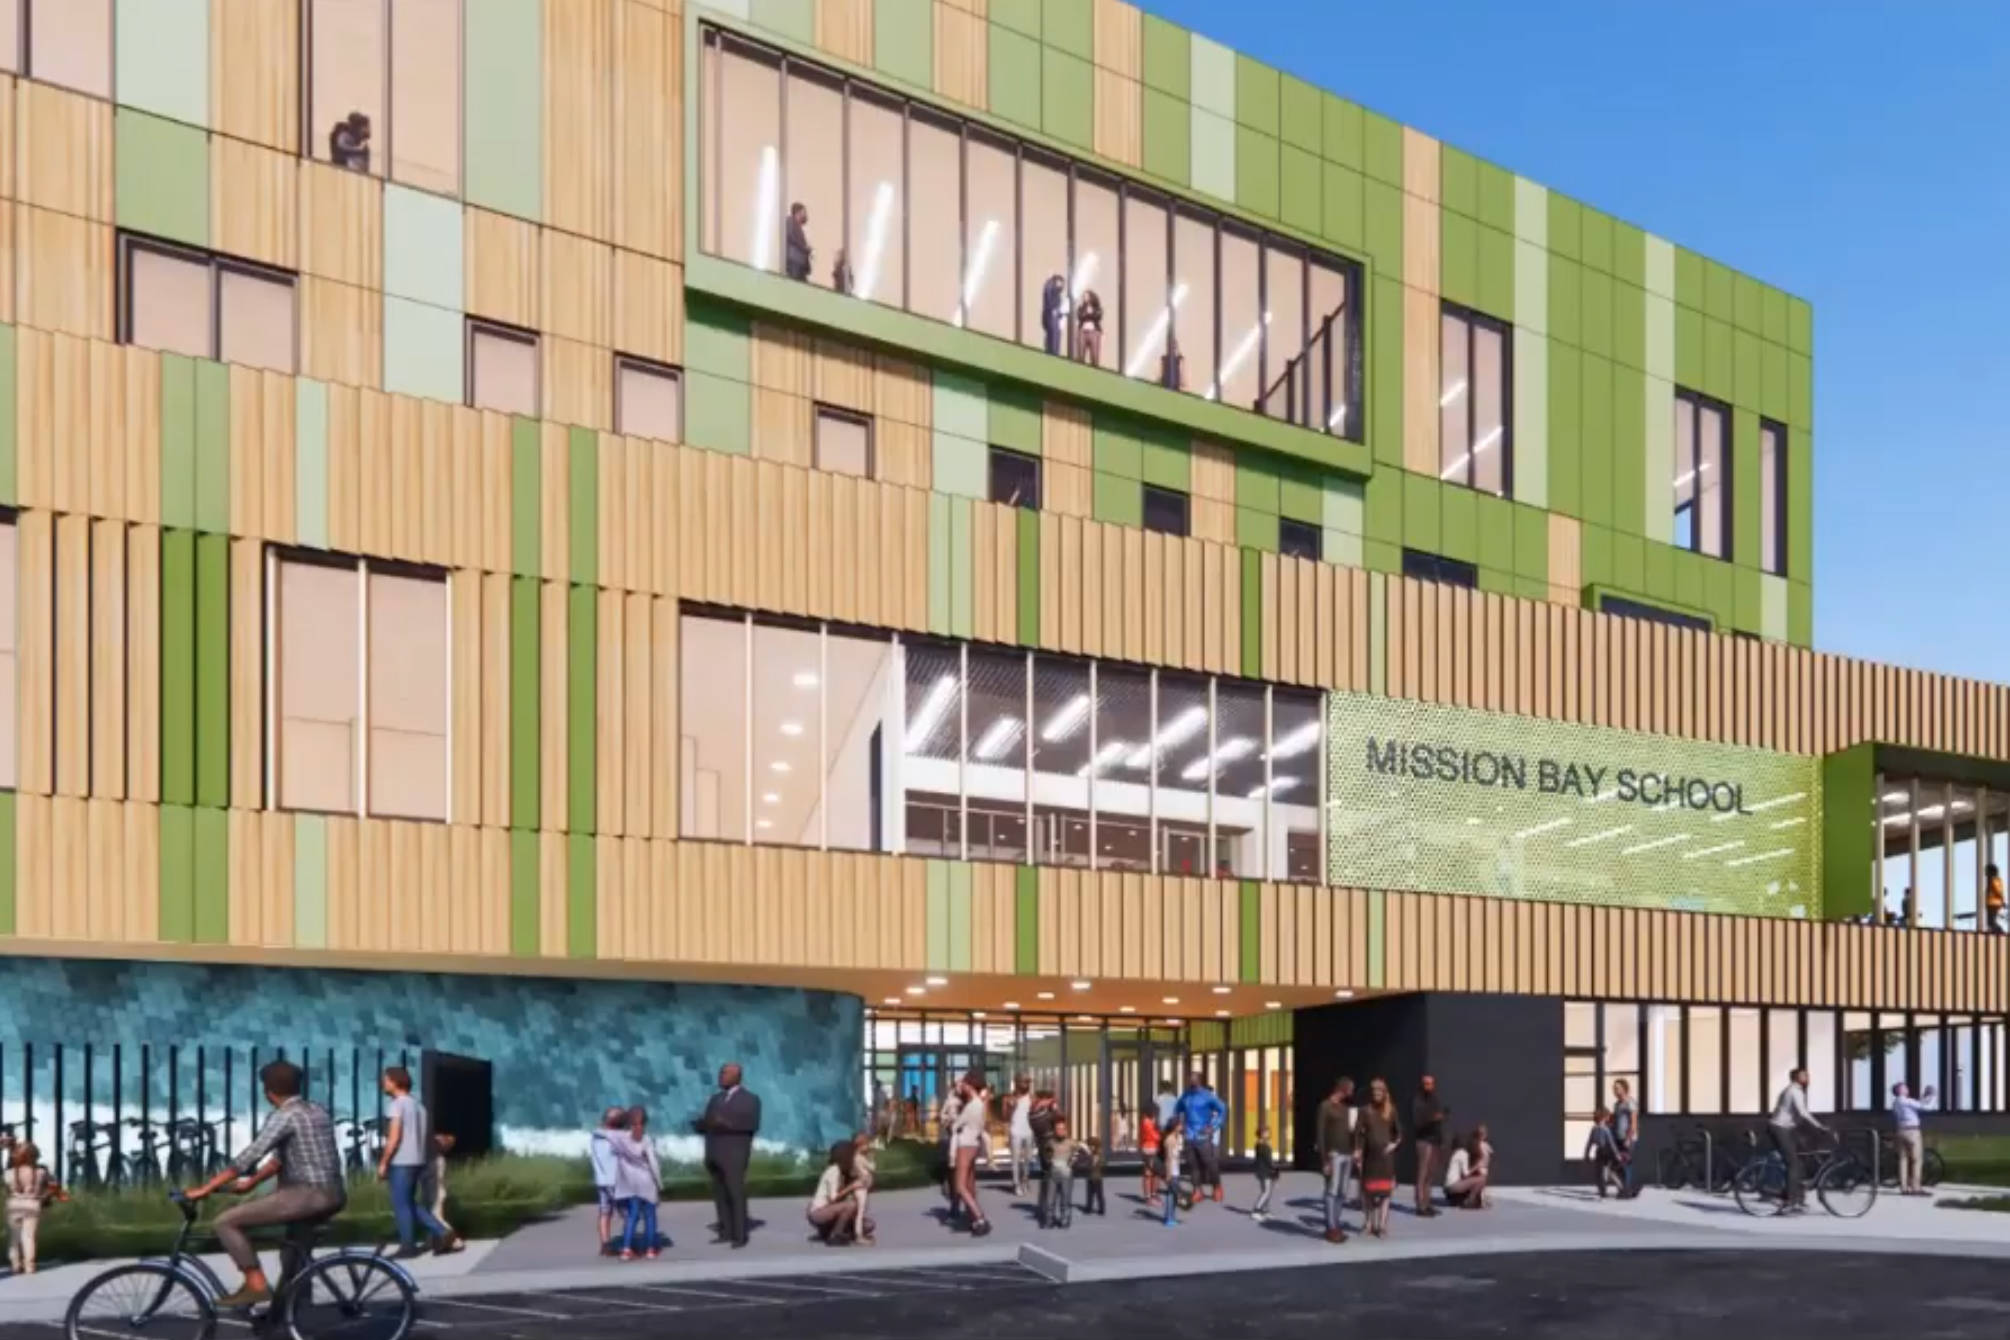 Renderings of the main entrance to upcoming Mission Bay elementary school on Owens Street. (Courtesy Gould Evans)